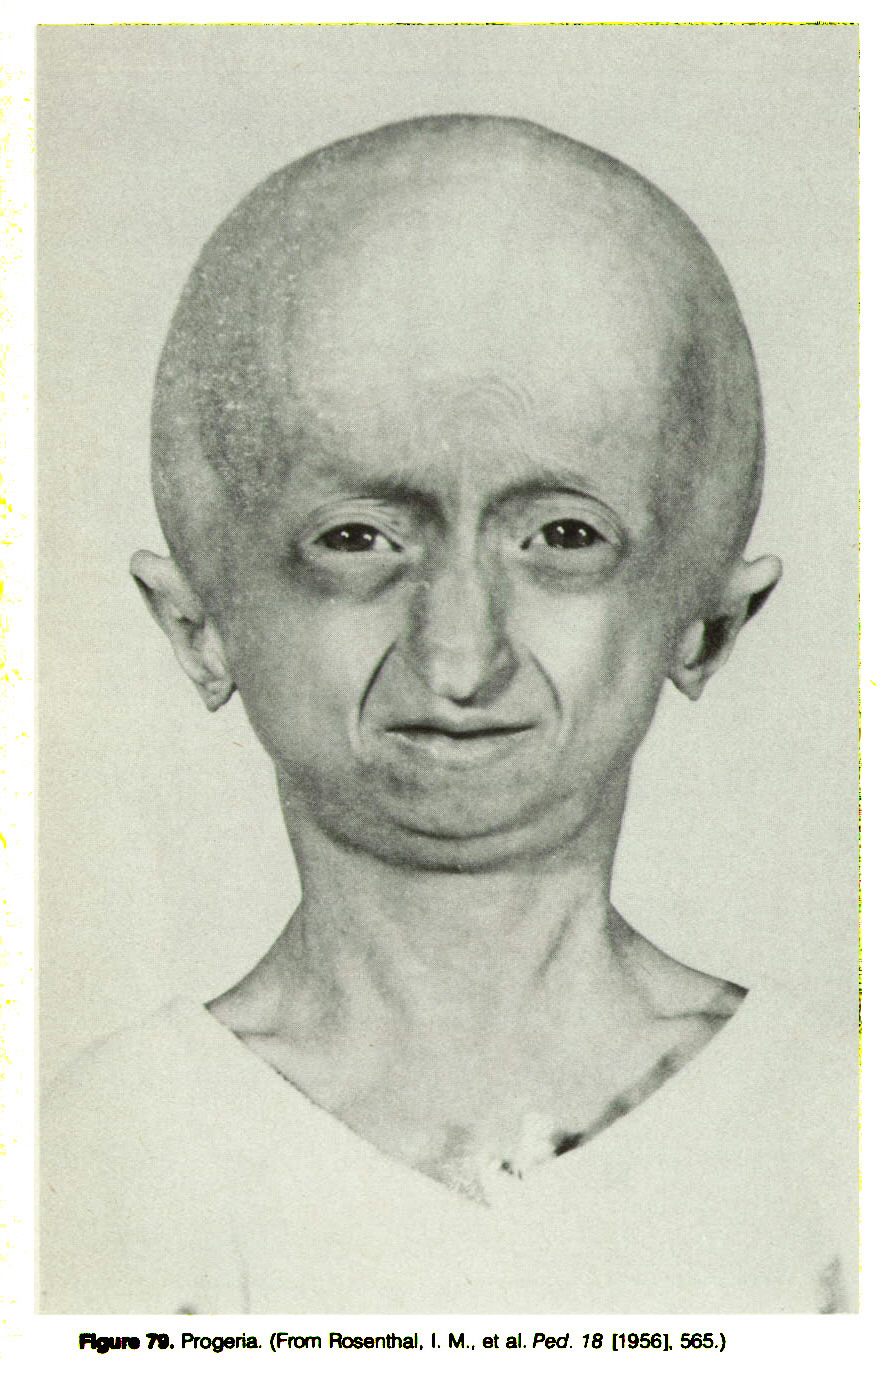 Figure 79. Progeria. (From Rosenthal, I. M., at al. Ped. 18 [1956], 565.)